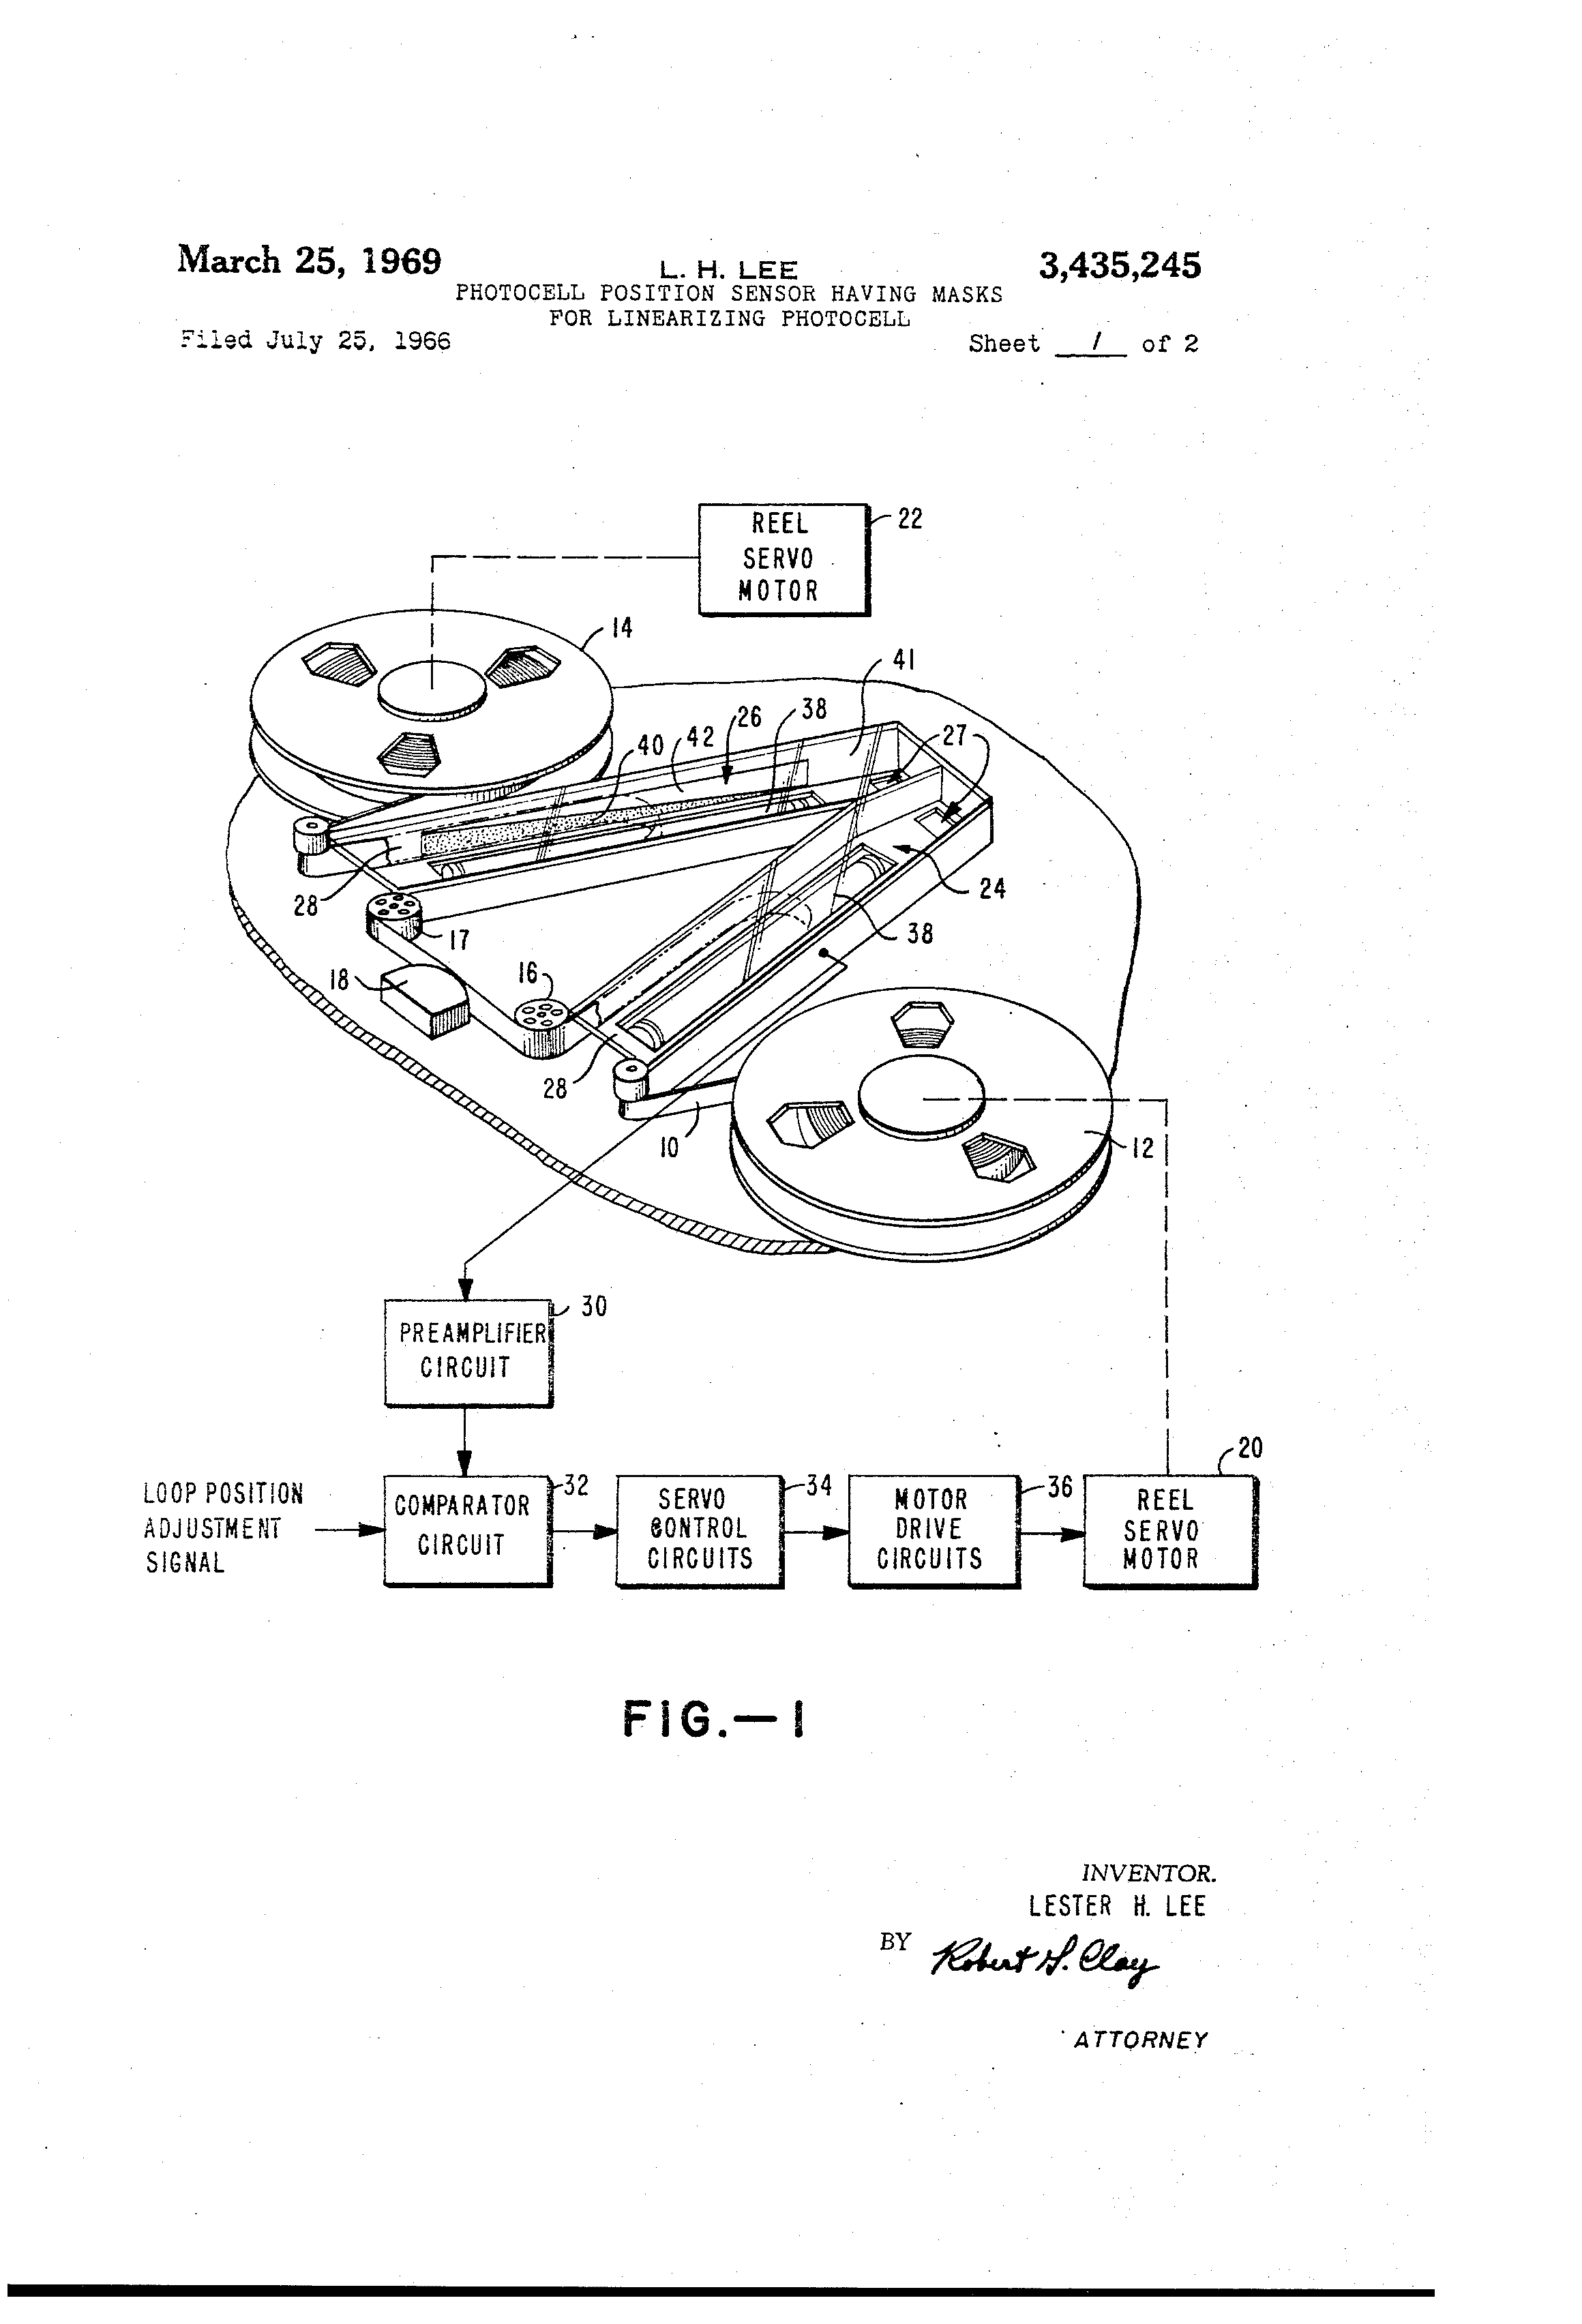 Patent Us3435245 Photocell Position Sensor Having Masks For Photocells Amplifiers Circuit Schematic Diagram Drawing